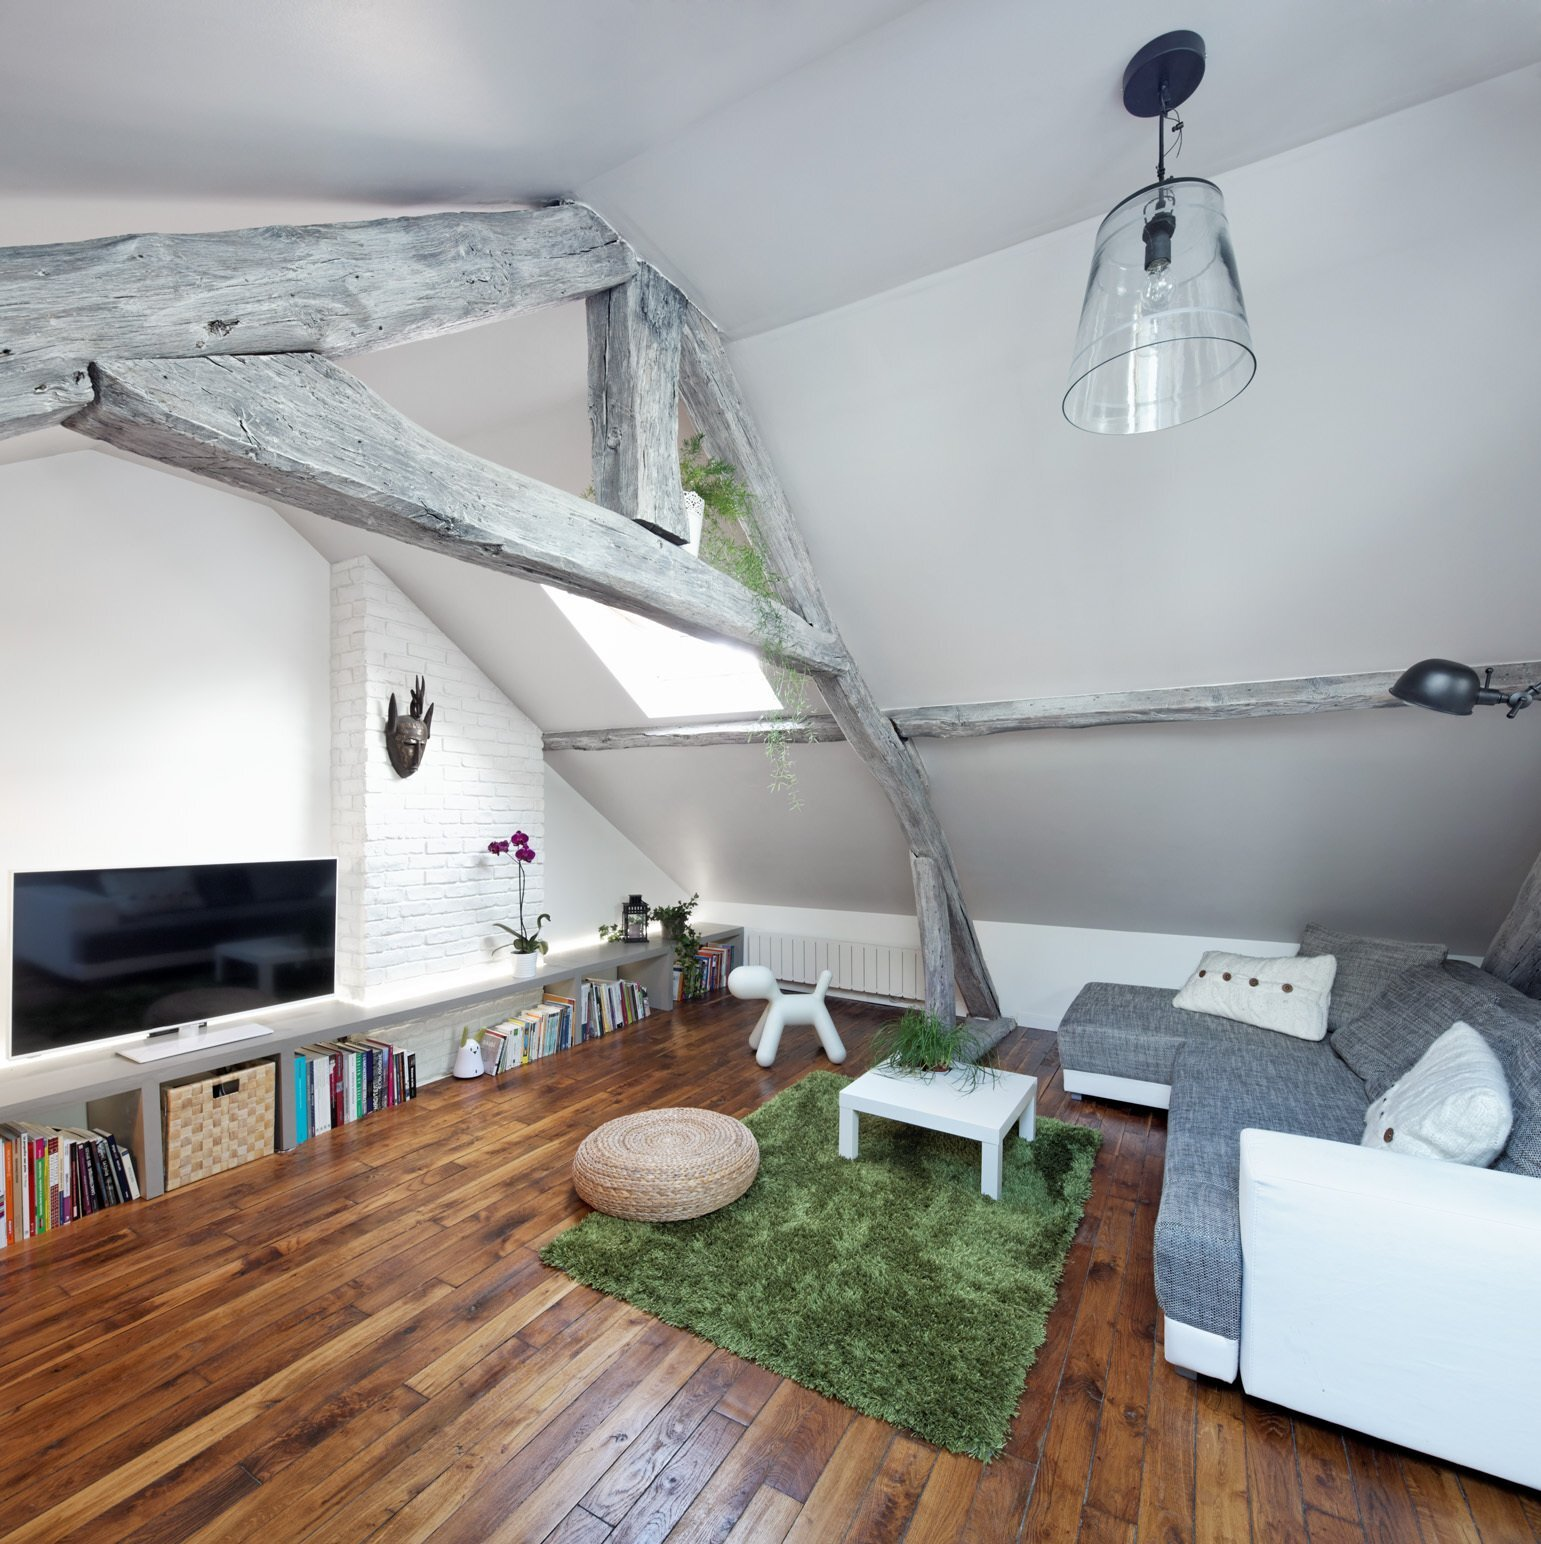 Living Under the Roof - Prisca Pellerin - France - Living Room - Humble Homes